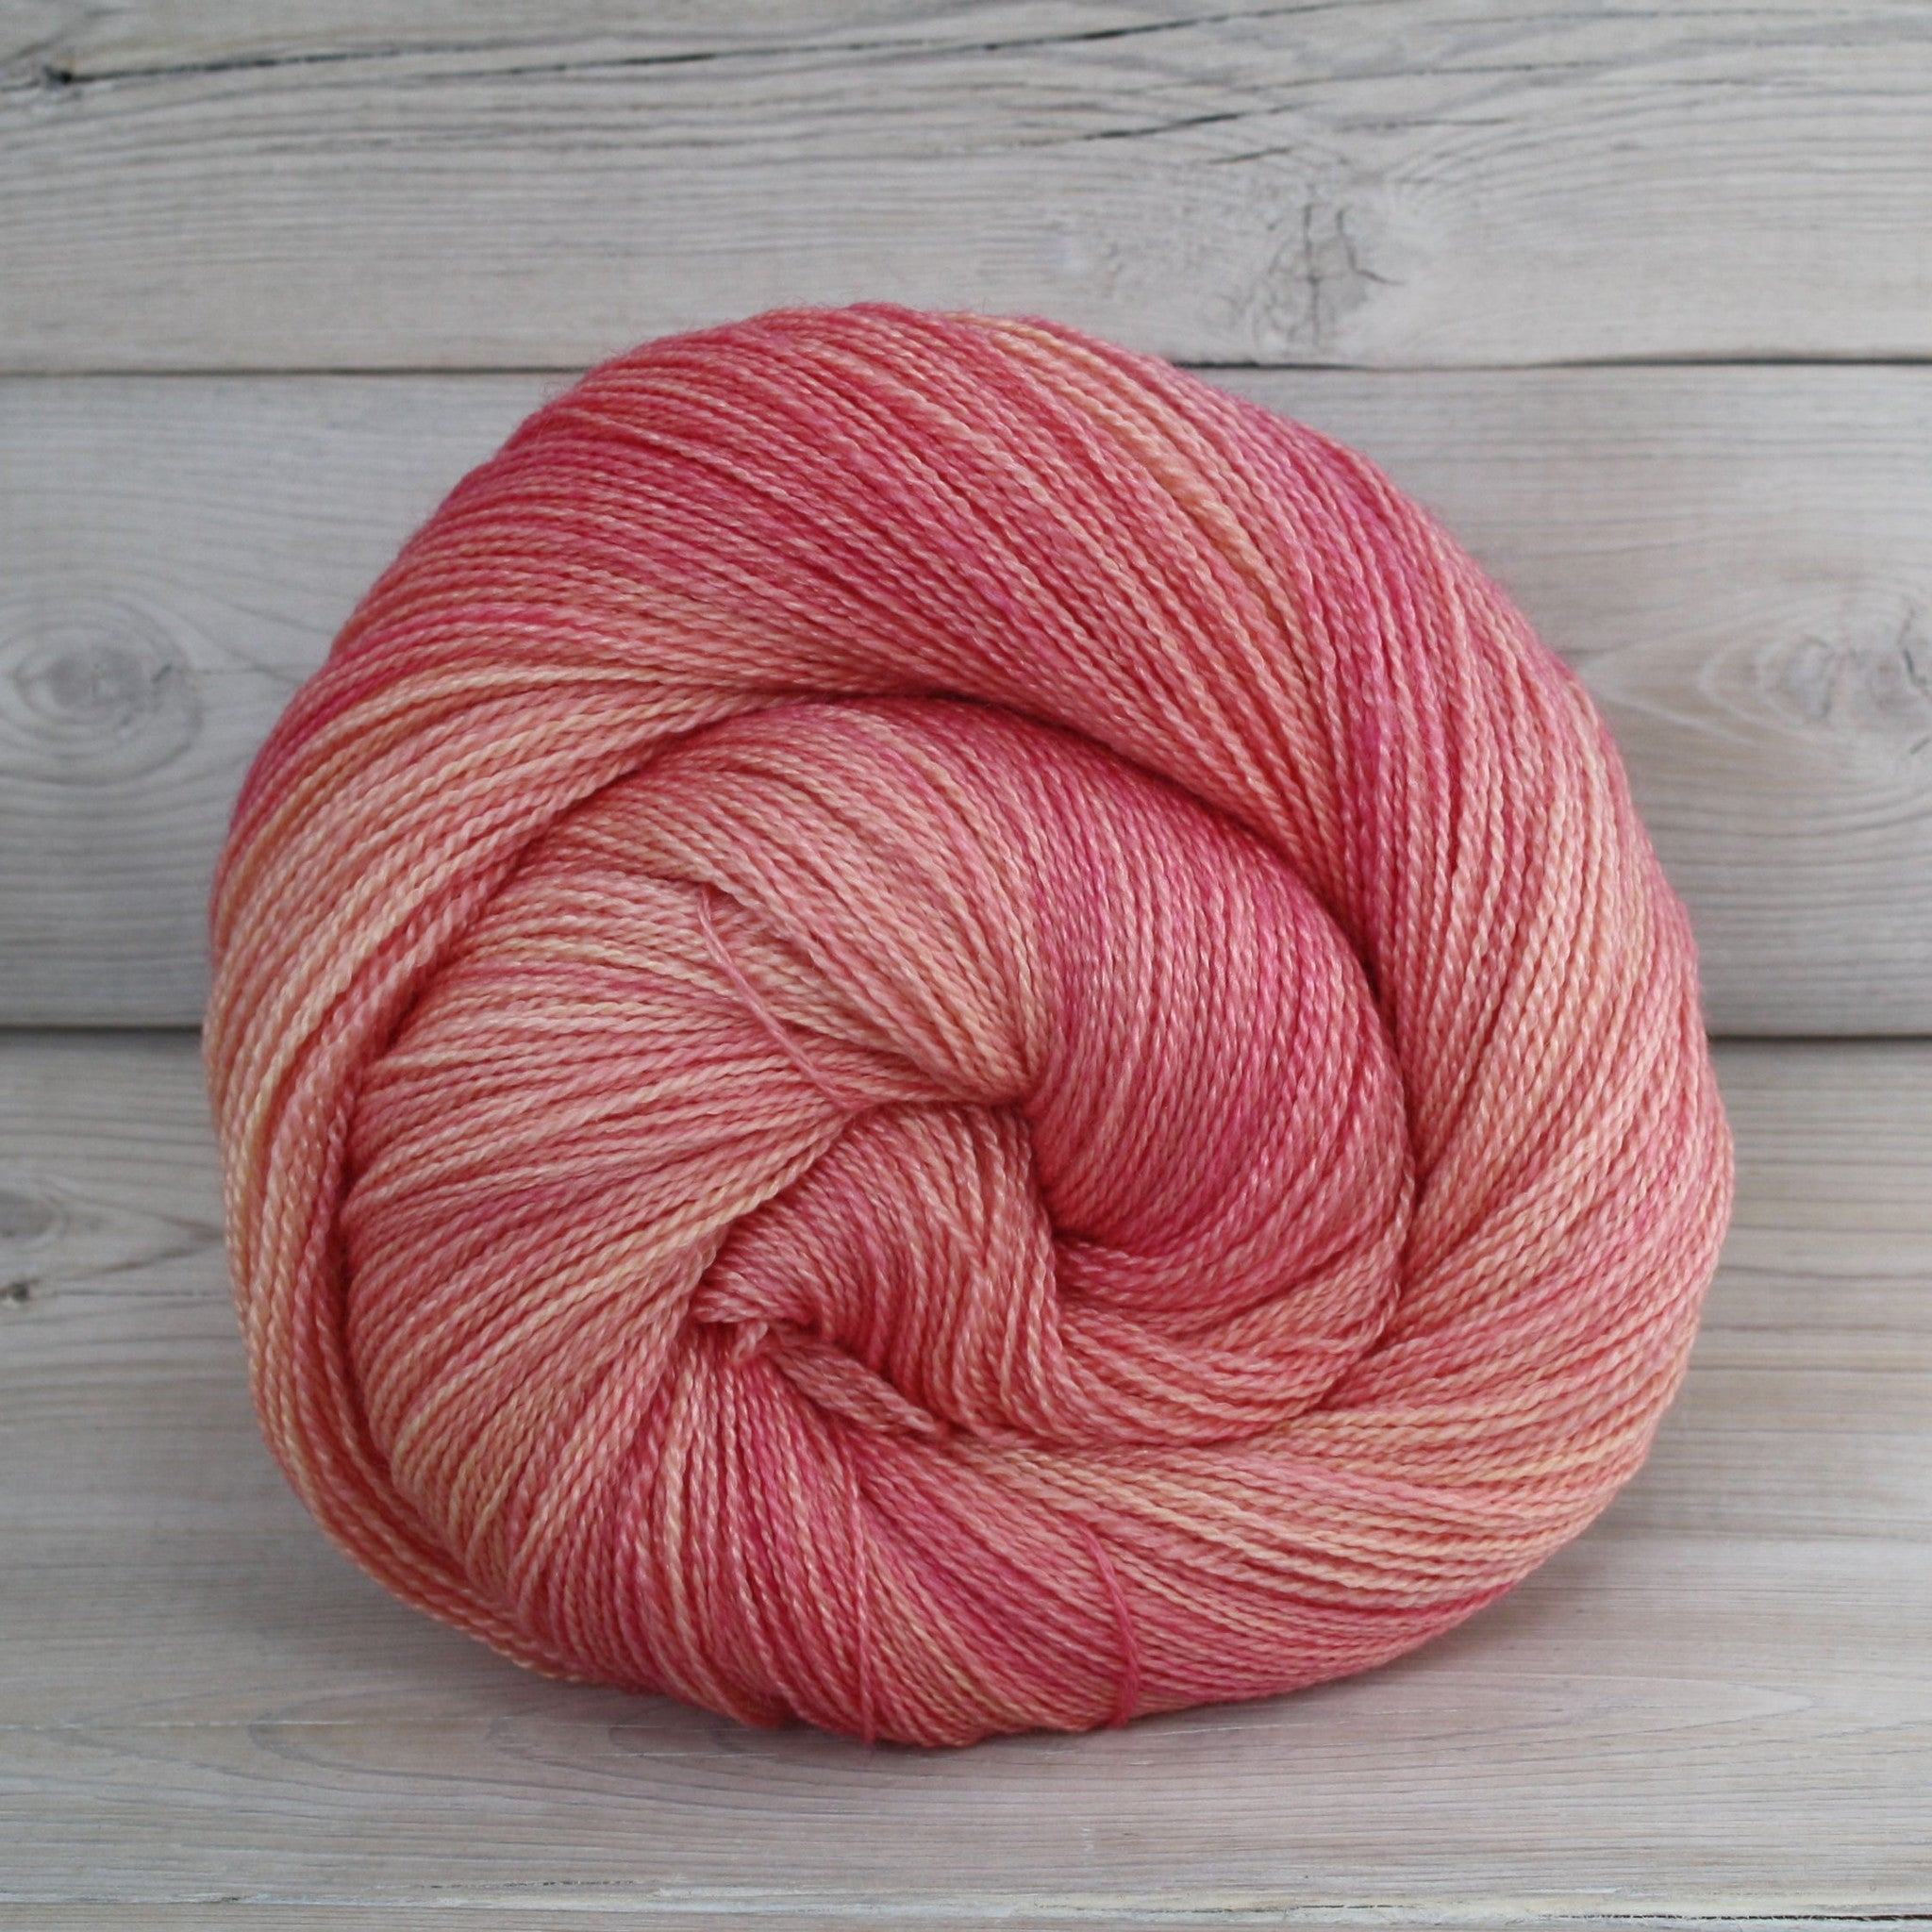 Luna Grey Fiber Arts Starbright Yarn | Colorway: Sorbet